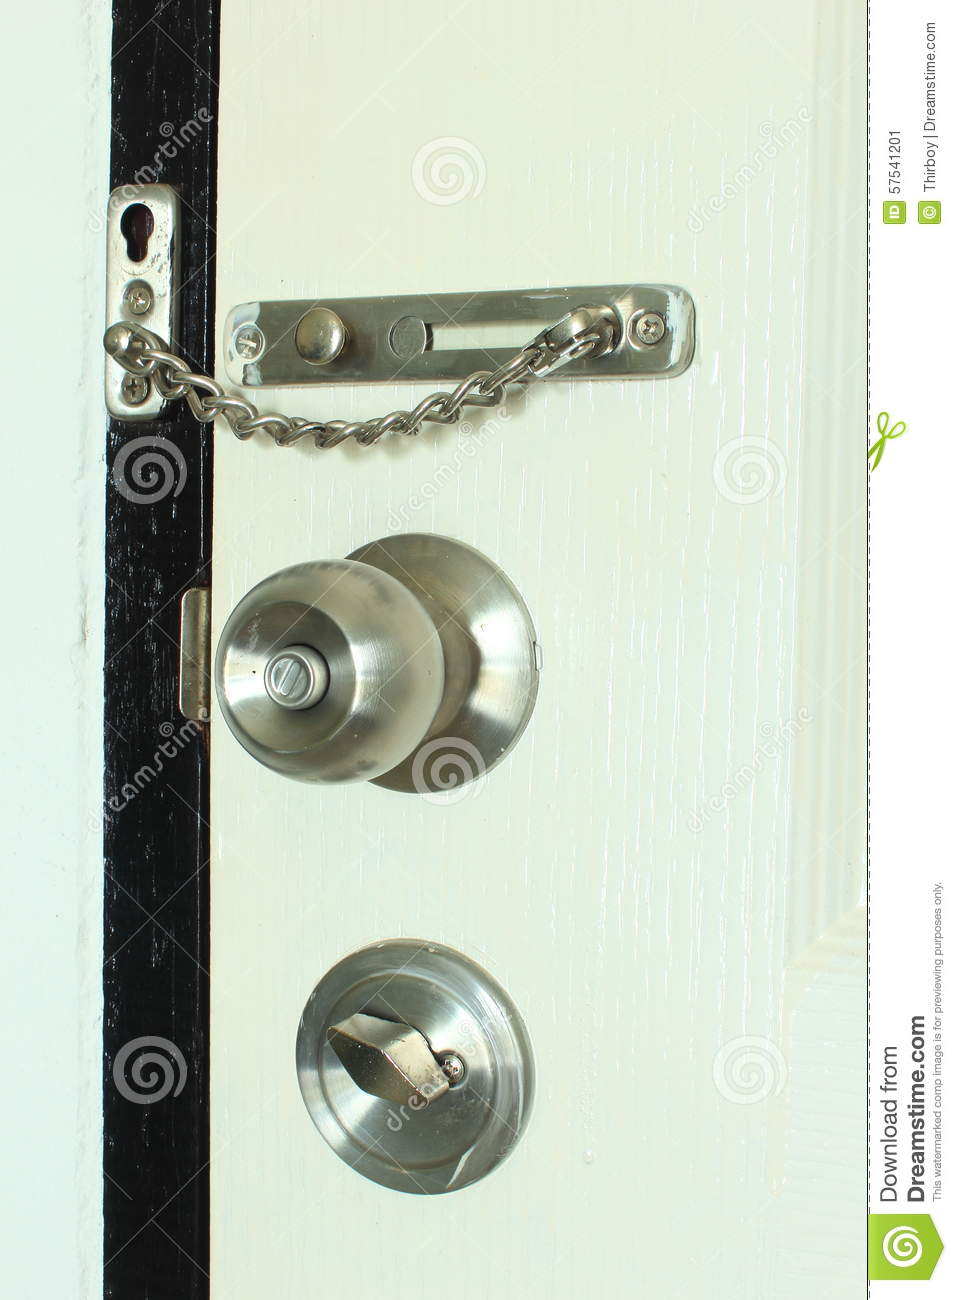 Security door locks types stock photo image 57541201 for Door lock types